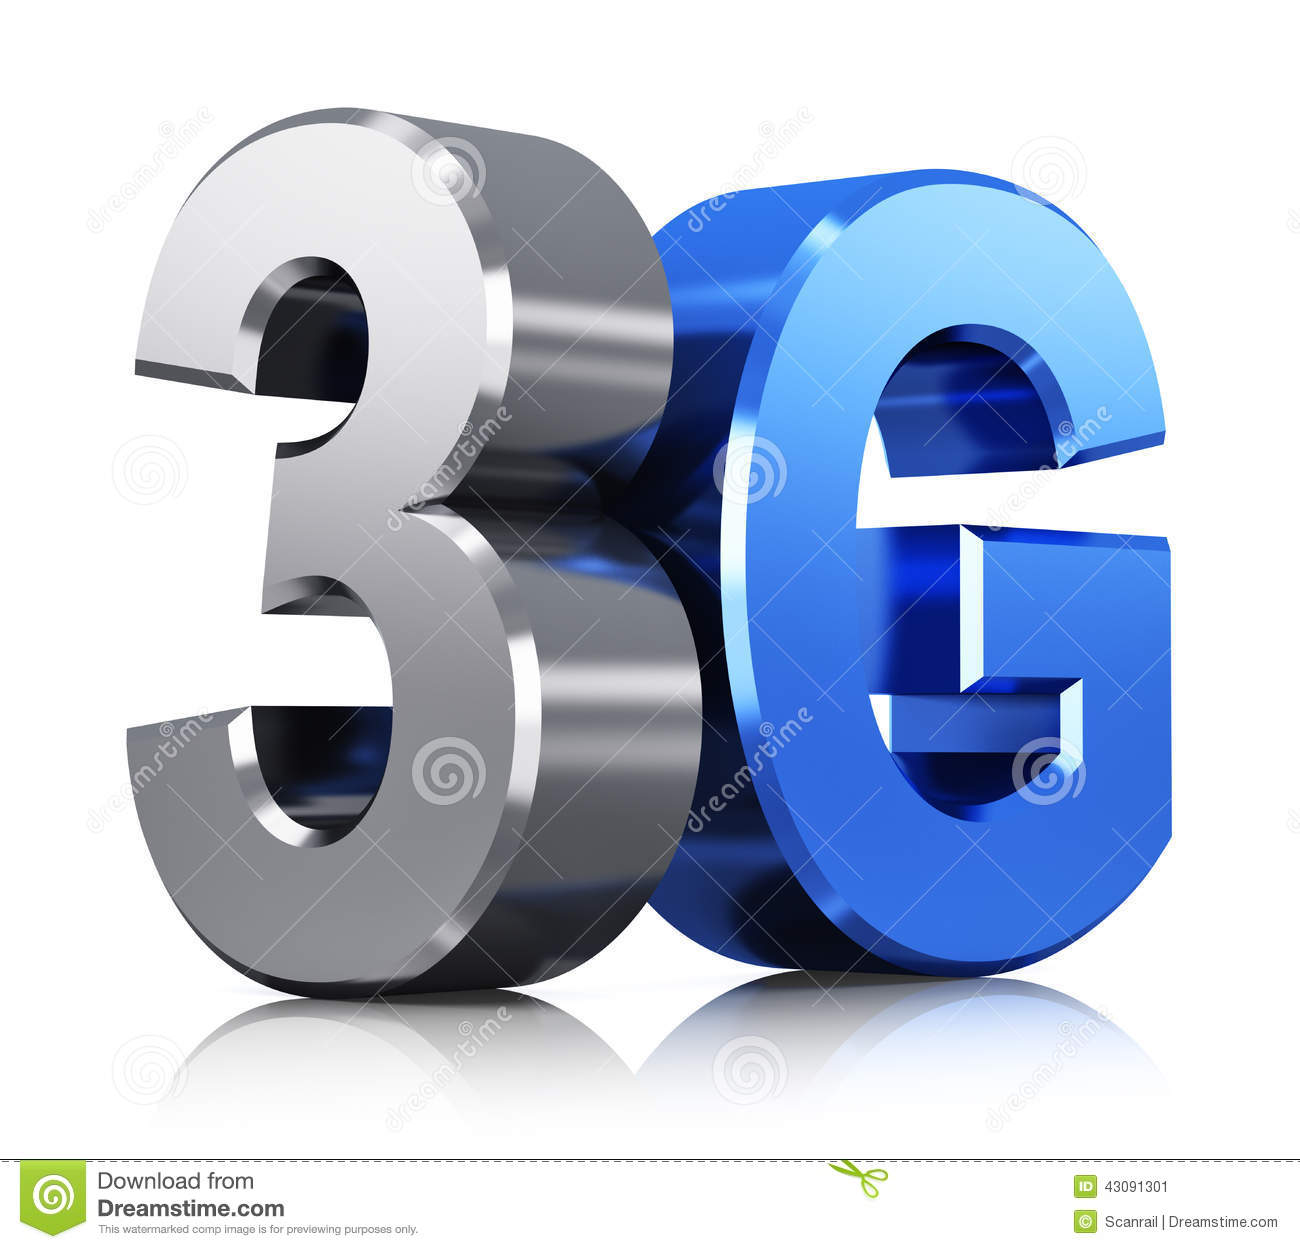 http://thumbs.dreamstime.com/z/g-wireless-technology-logo-creative-abstract-mobile-telecommunication-cellular-high-speed-data-connection-business-concept-blue-43091301.jpg